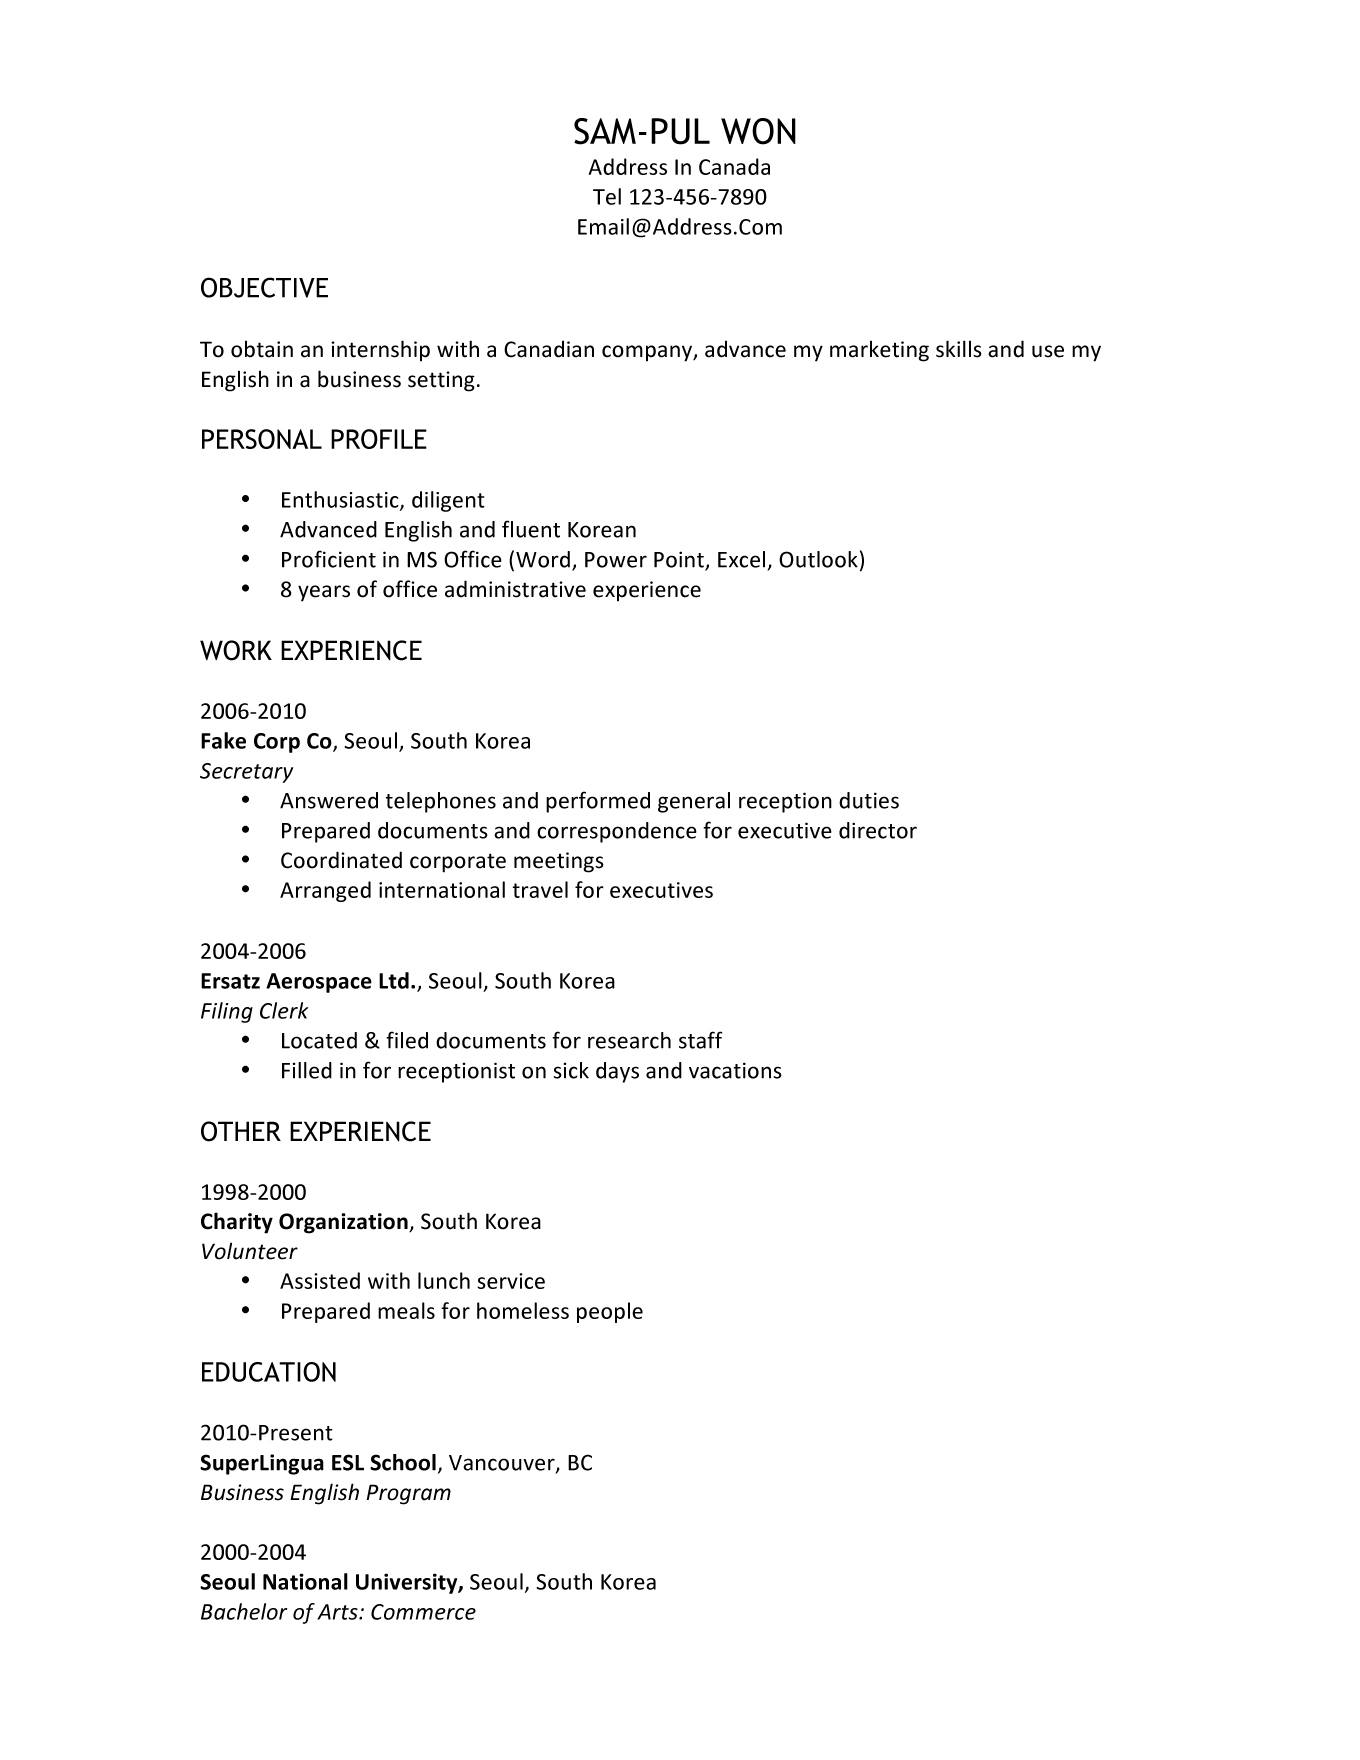 resume referrals upon request professional resume it sample resume maker create professional examples of good resumes - Canadian Resume Builder